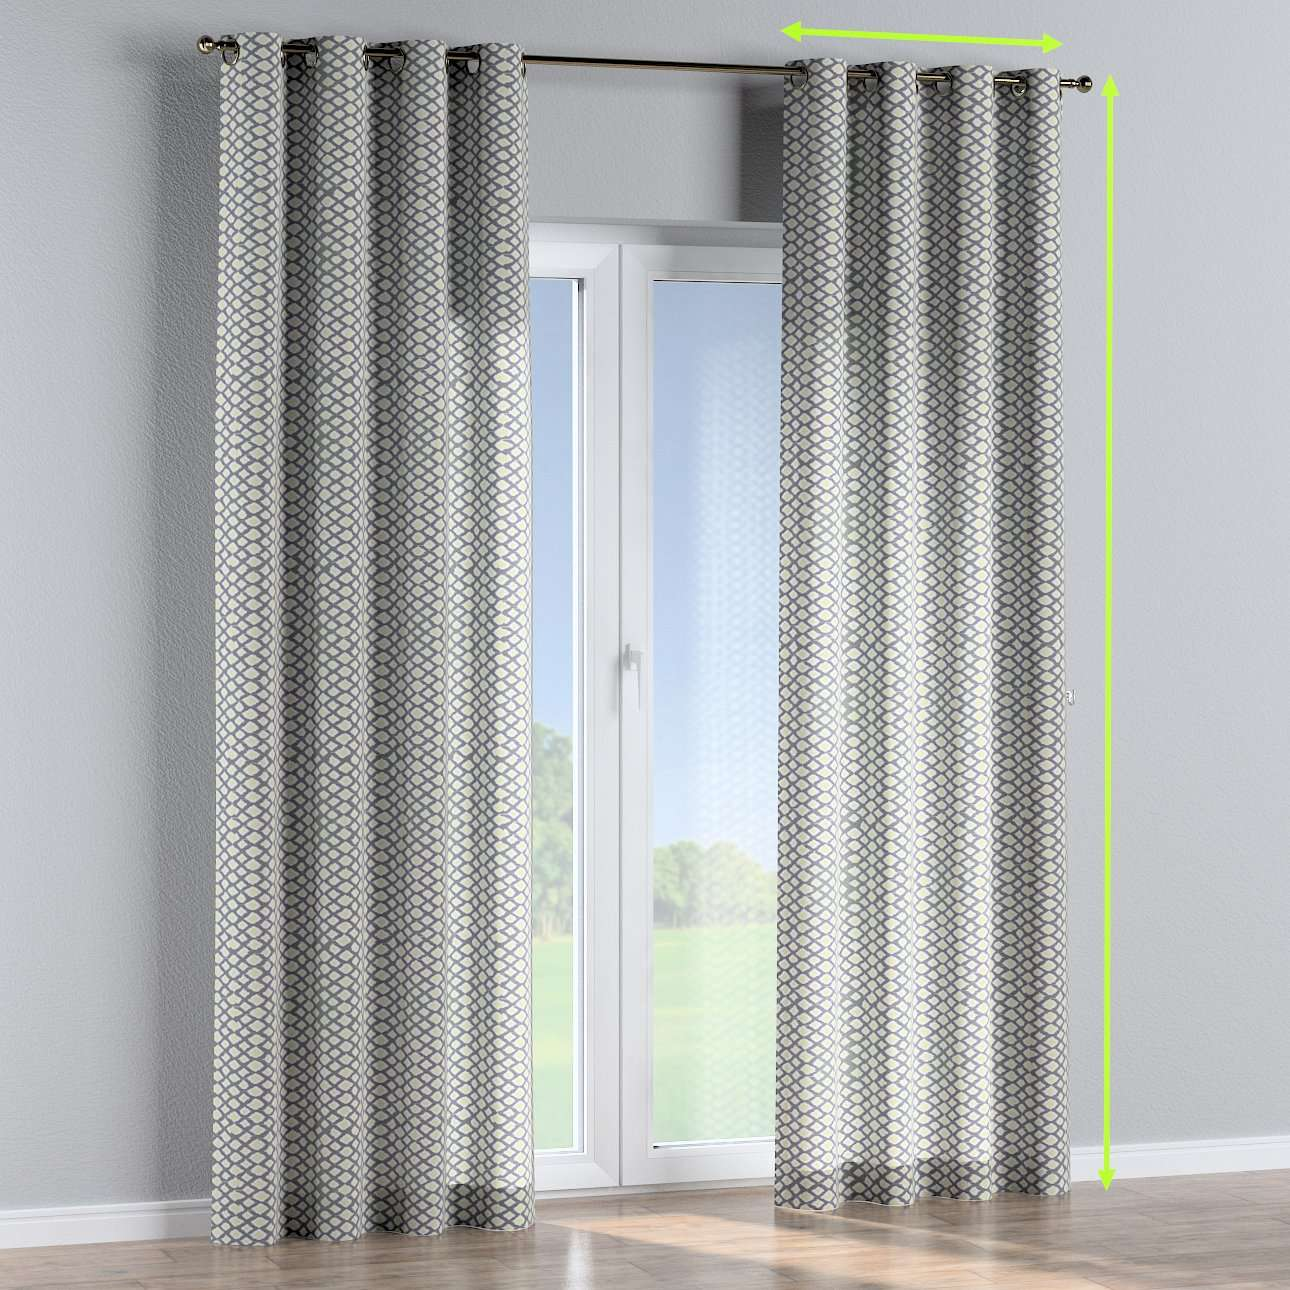 Eyelet lined curtains in collection Comics/Geometrical, fabric: 141-21